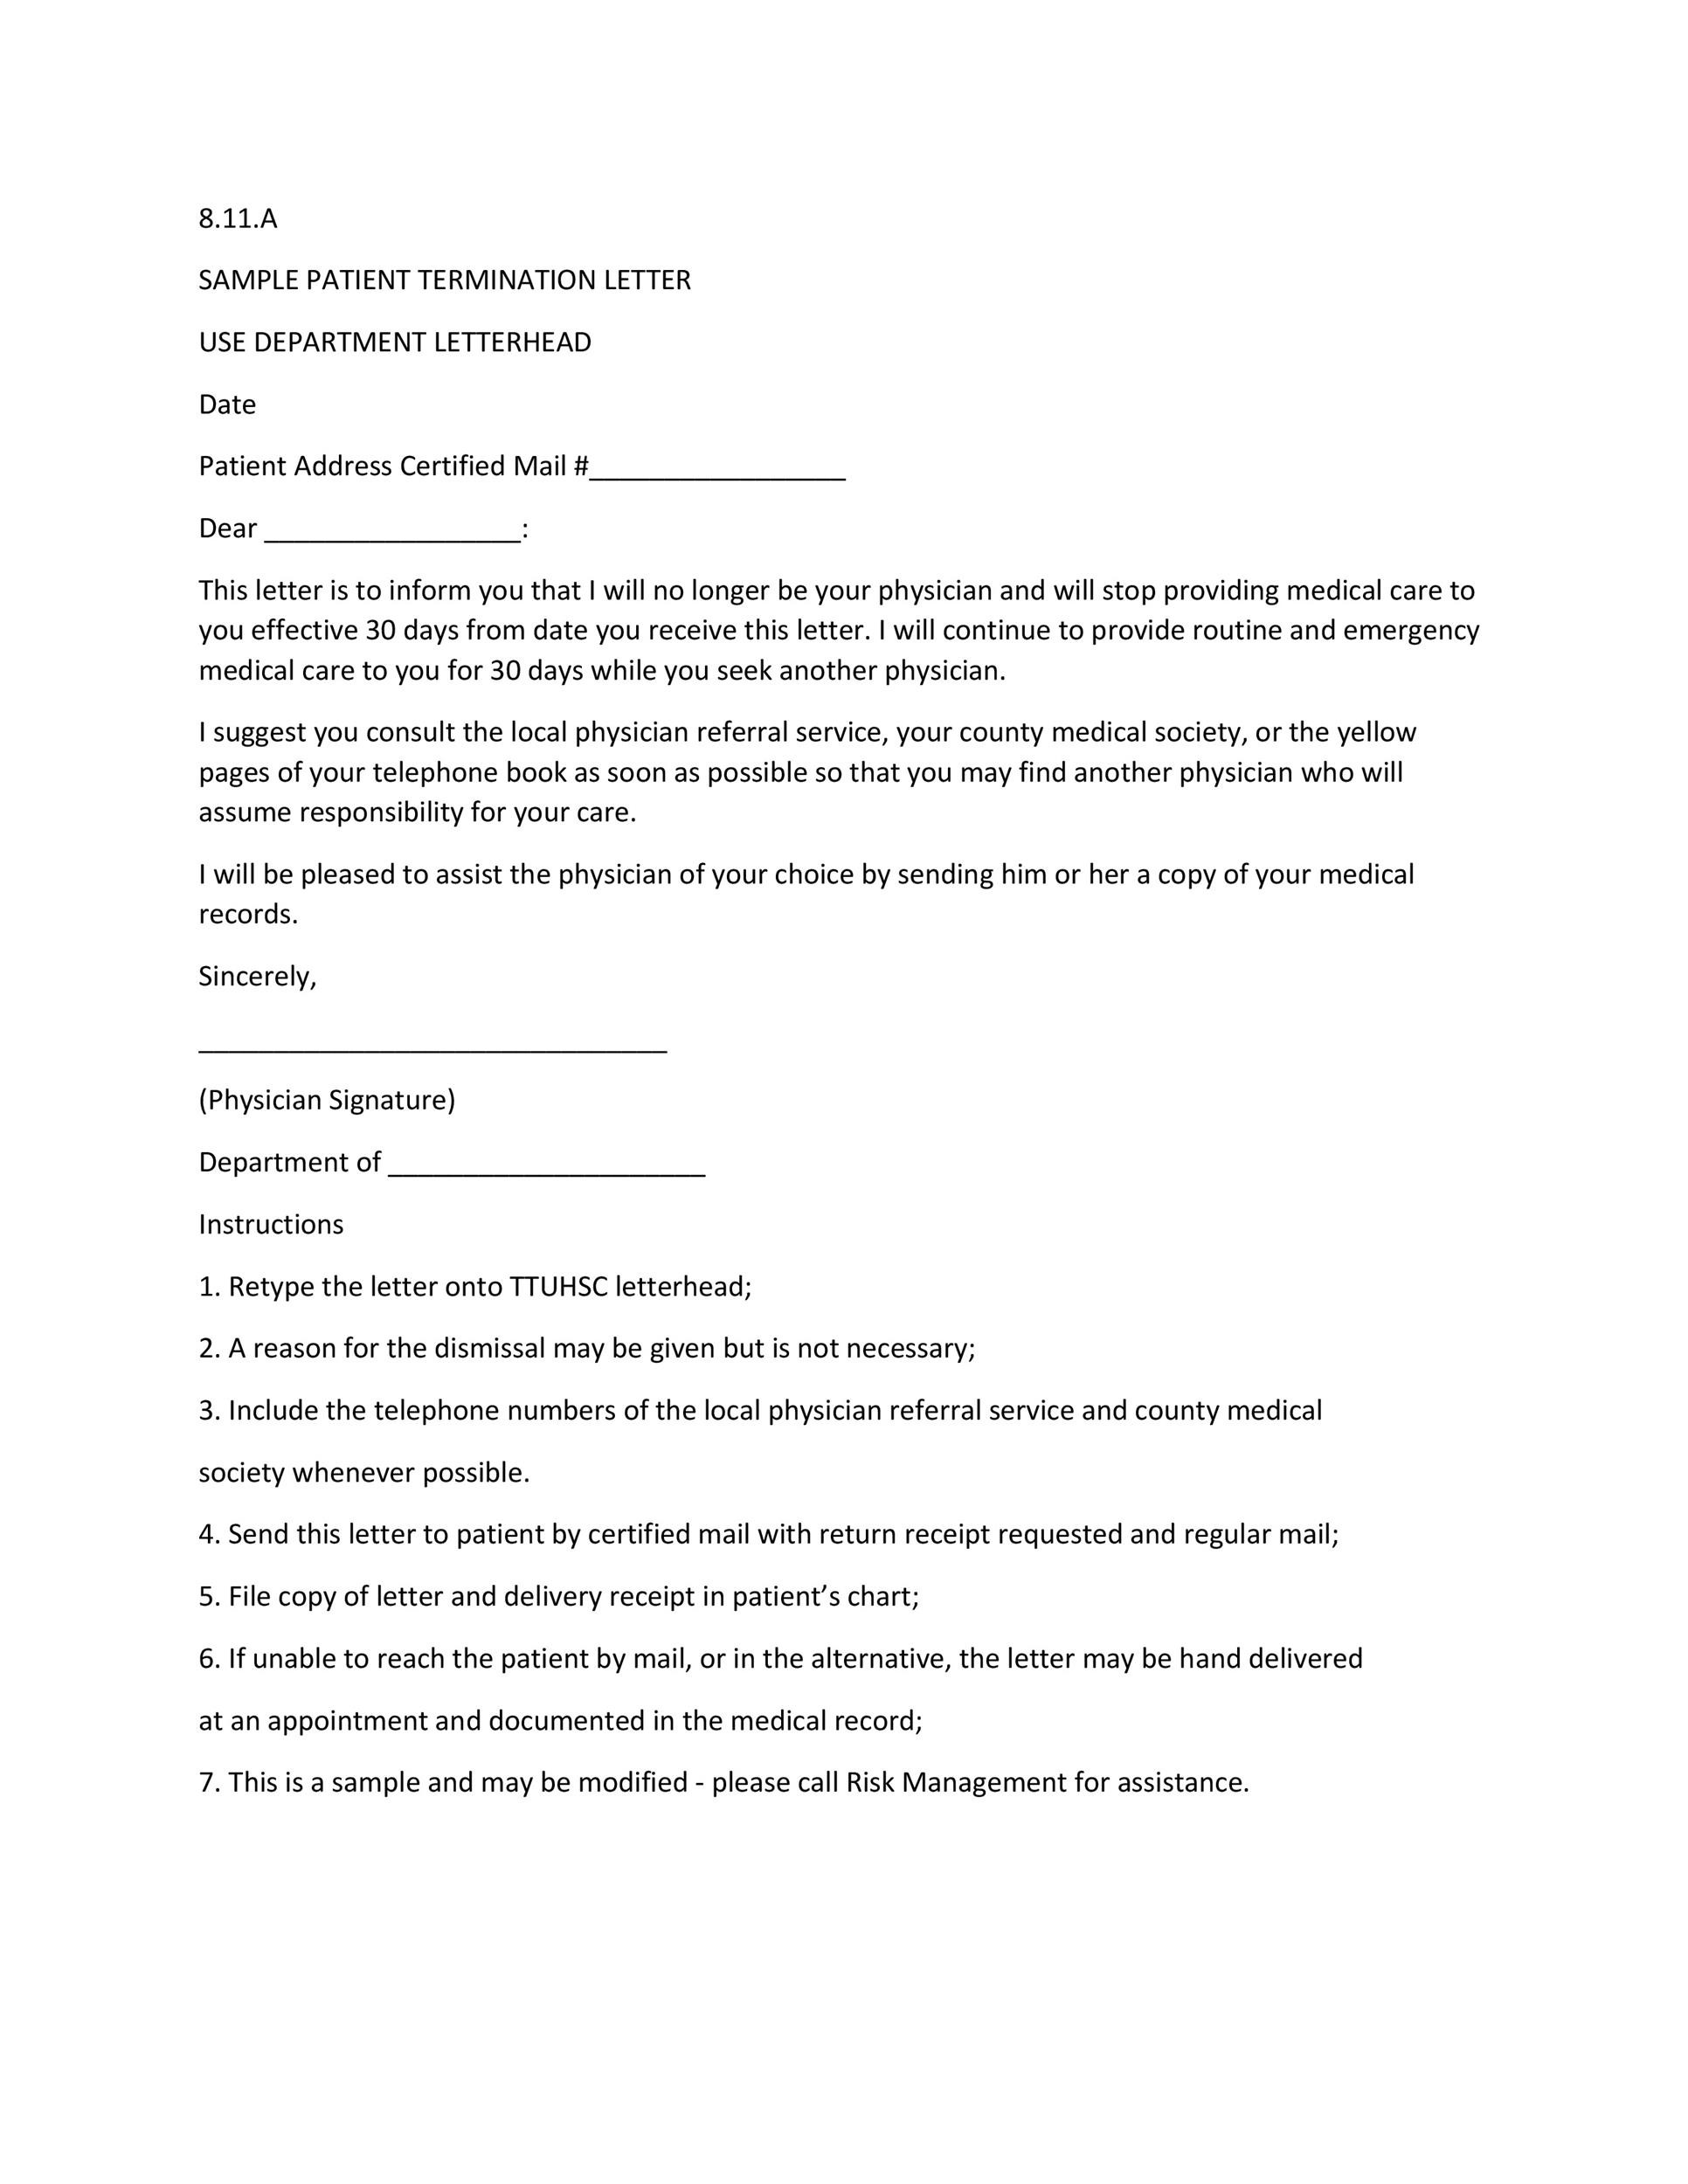 35 Perfect Termination Letter Samples Lease Employee Contract – Termination Letter Templates